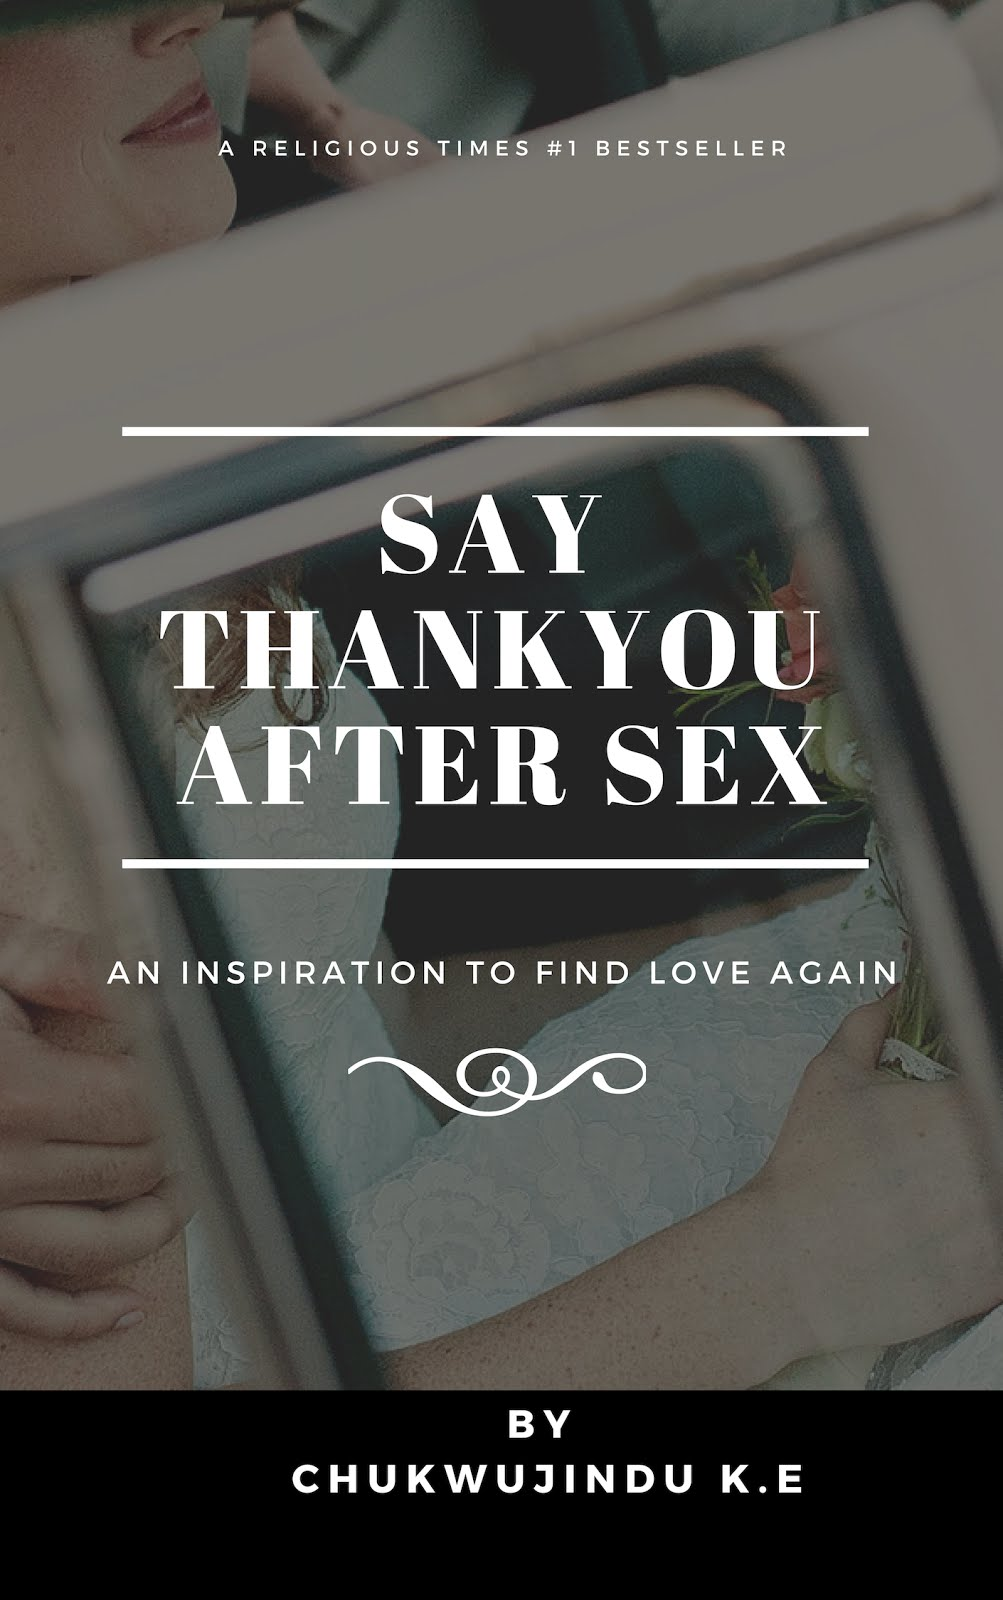 Say Thank You After Sex - By Chukwujindu K.E